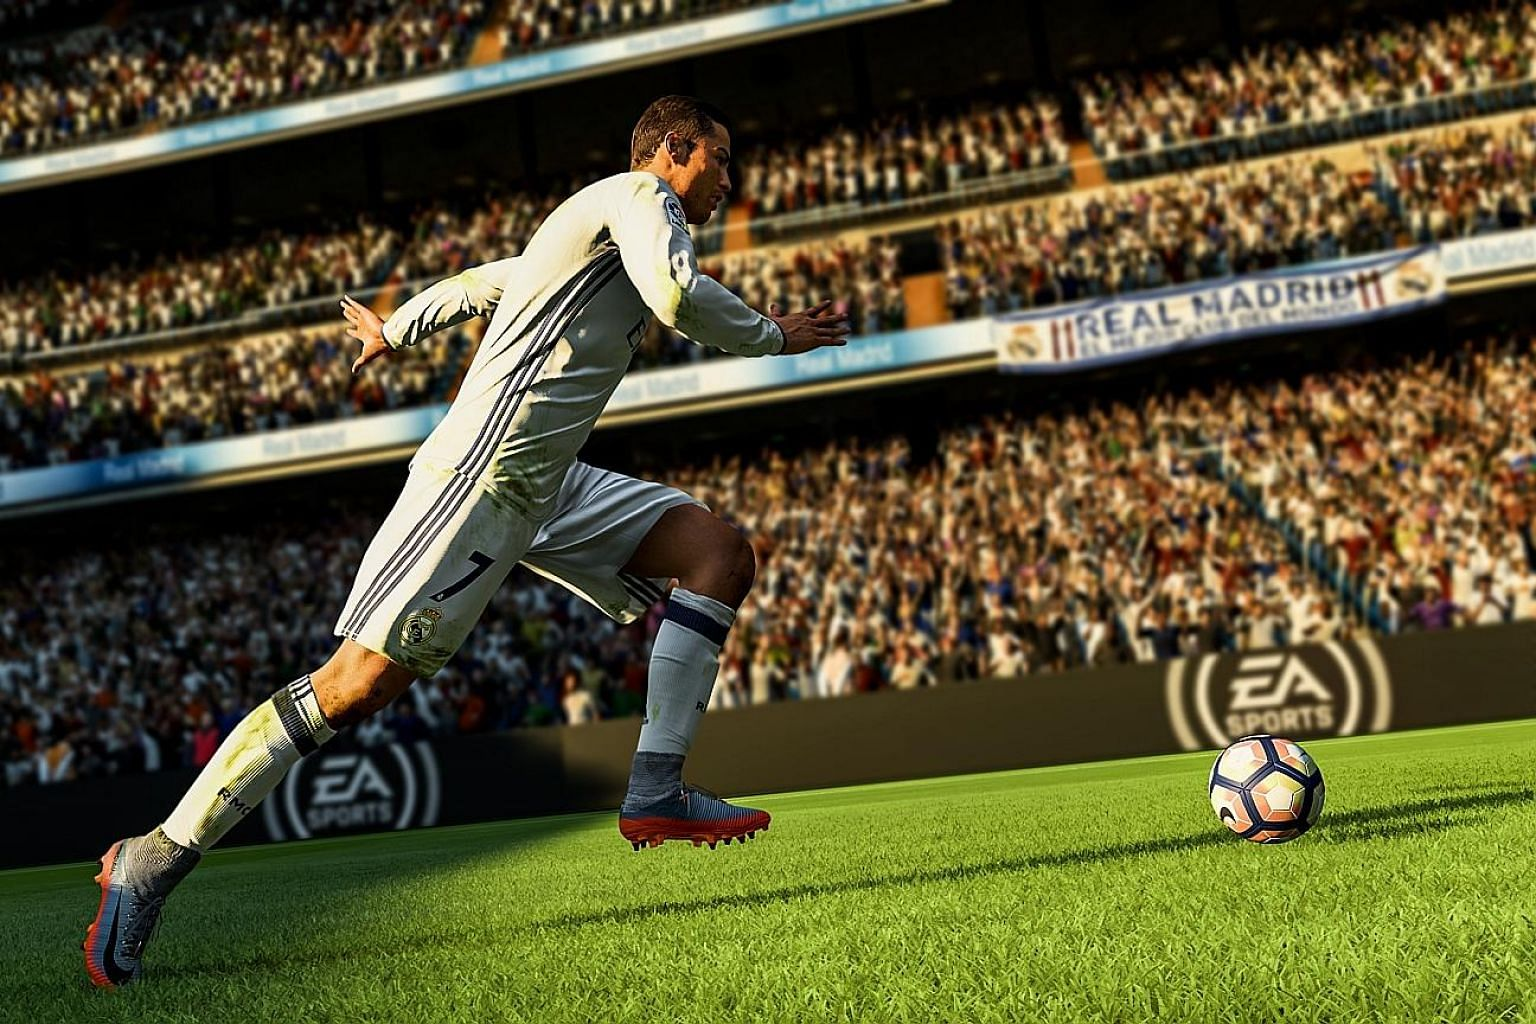 In Fifa 18, the developers have recorded the unique movement styles of top players such as Real Madrid's Cristiano Ronaldo, adding much more realism to the game.